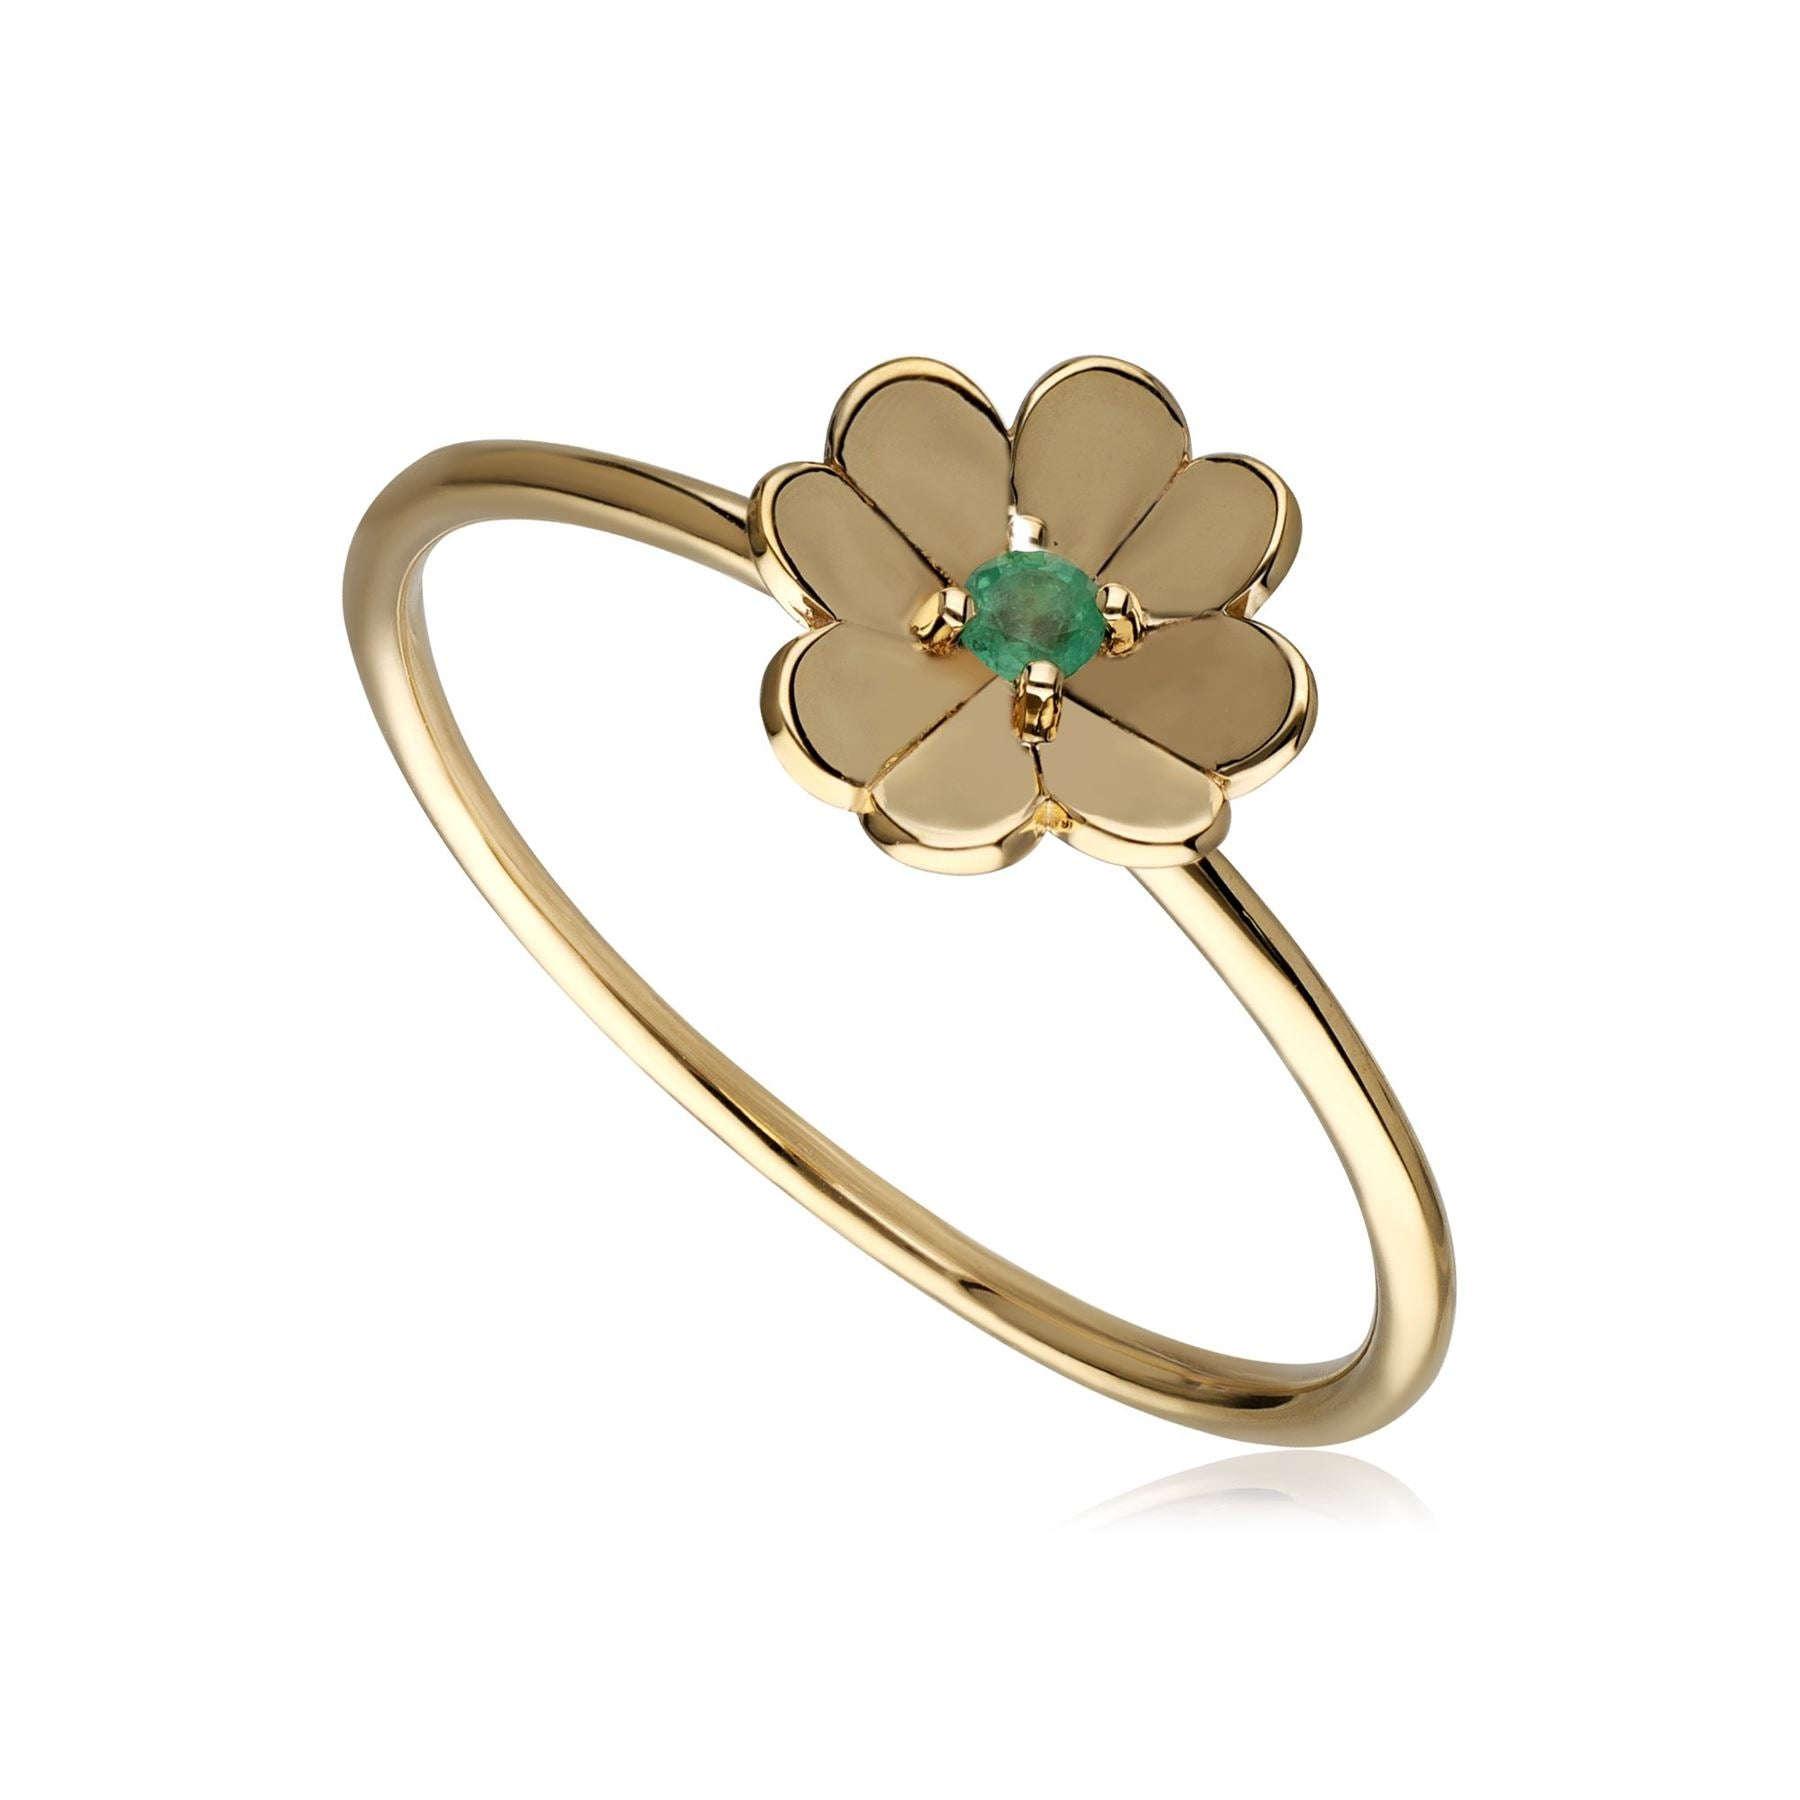 Gardenia Emerald Clover Ring In 9ct Yellow Gold Deal Price £ 109.00